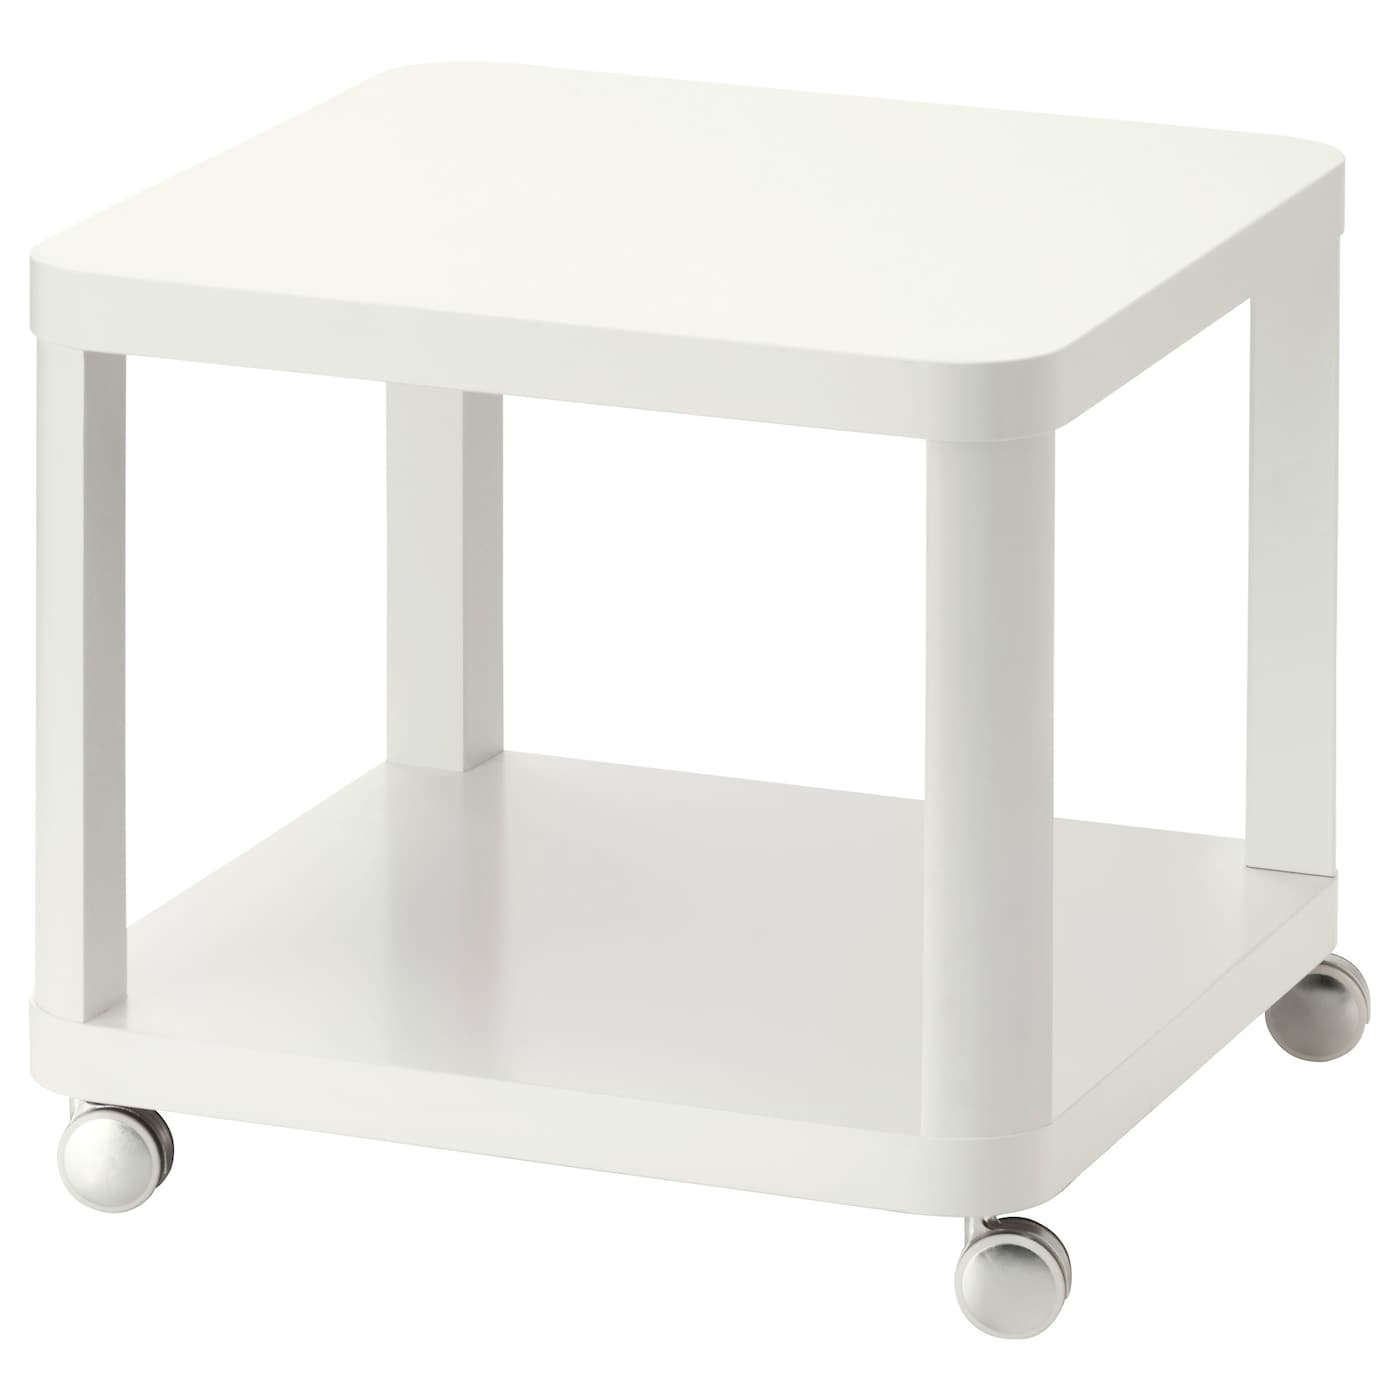 Flekke day bed frame with 2 drawers white 80x200 cm ikea - Table a roulettes ikea ...